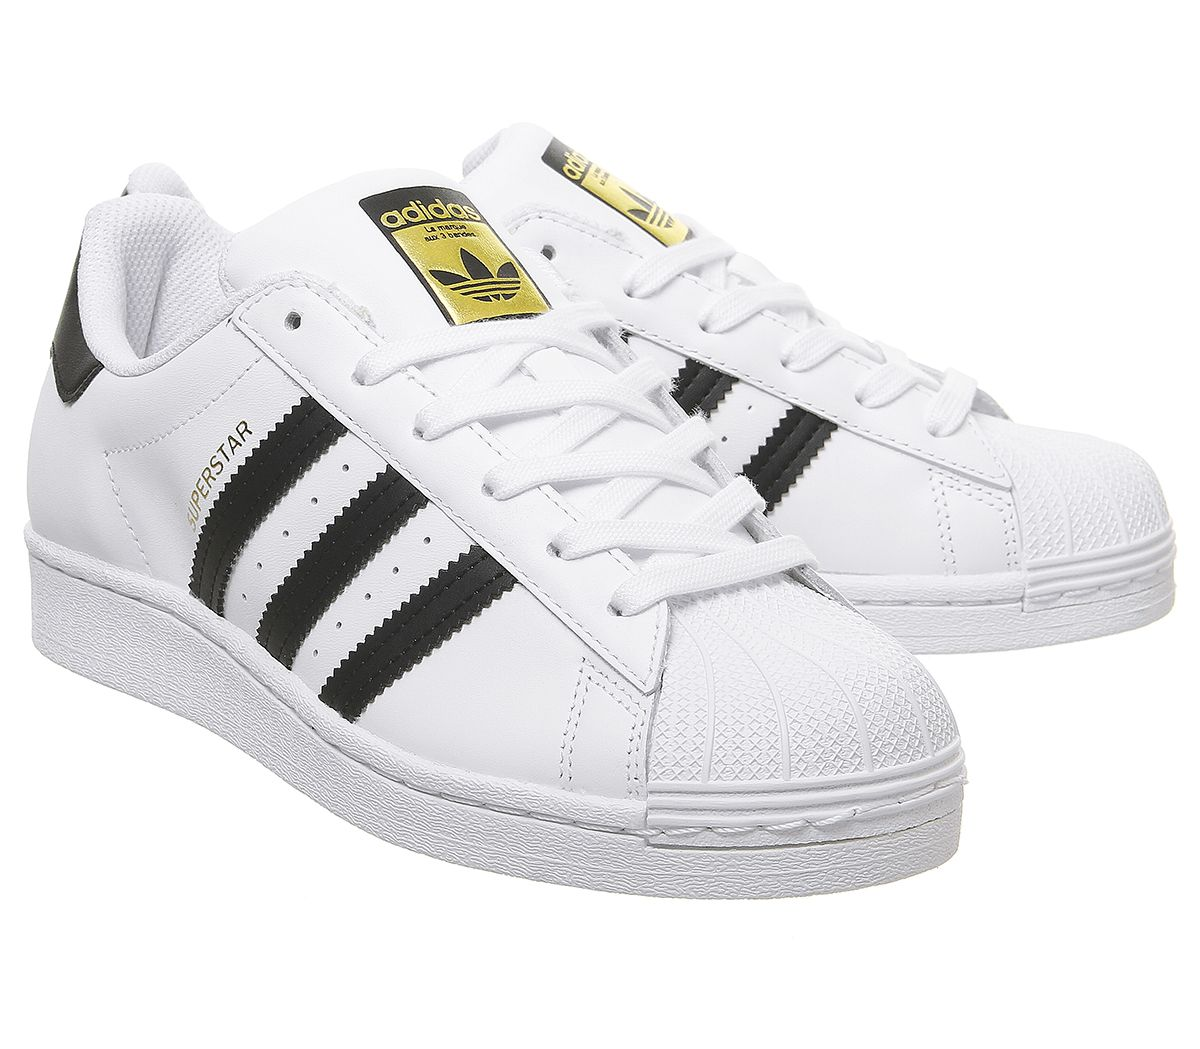 Womens Adidas Superstar Gs Trainers White Black White Trainers Shoes